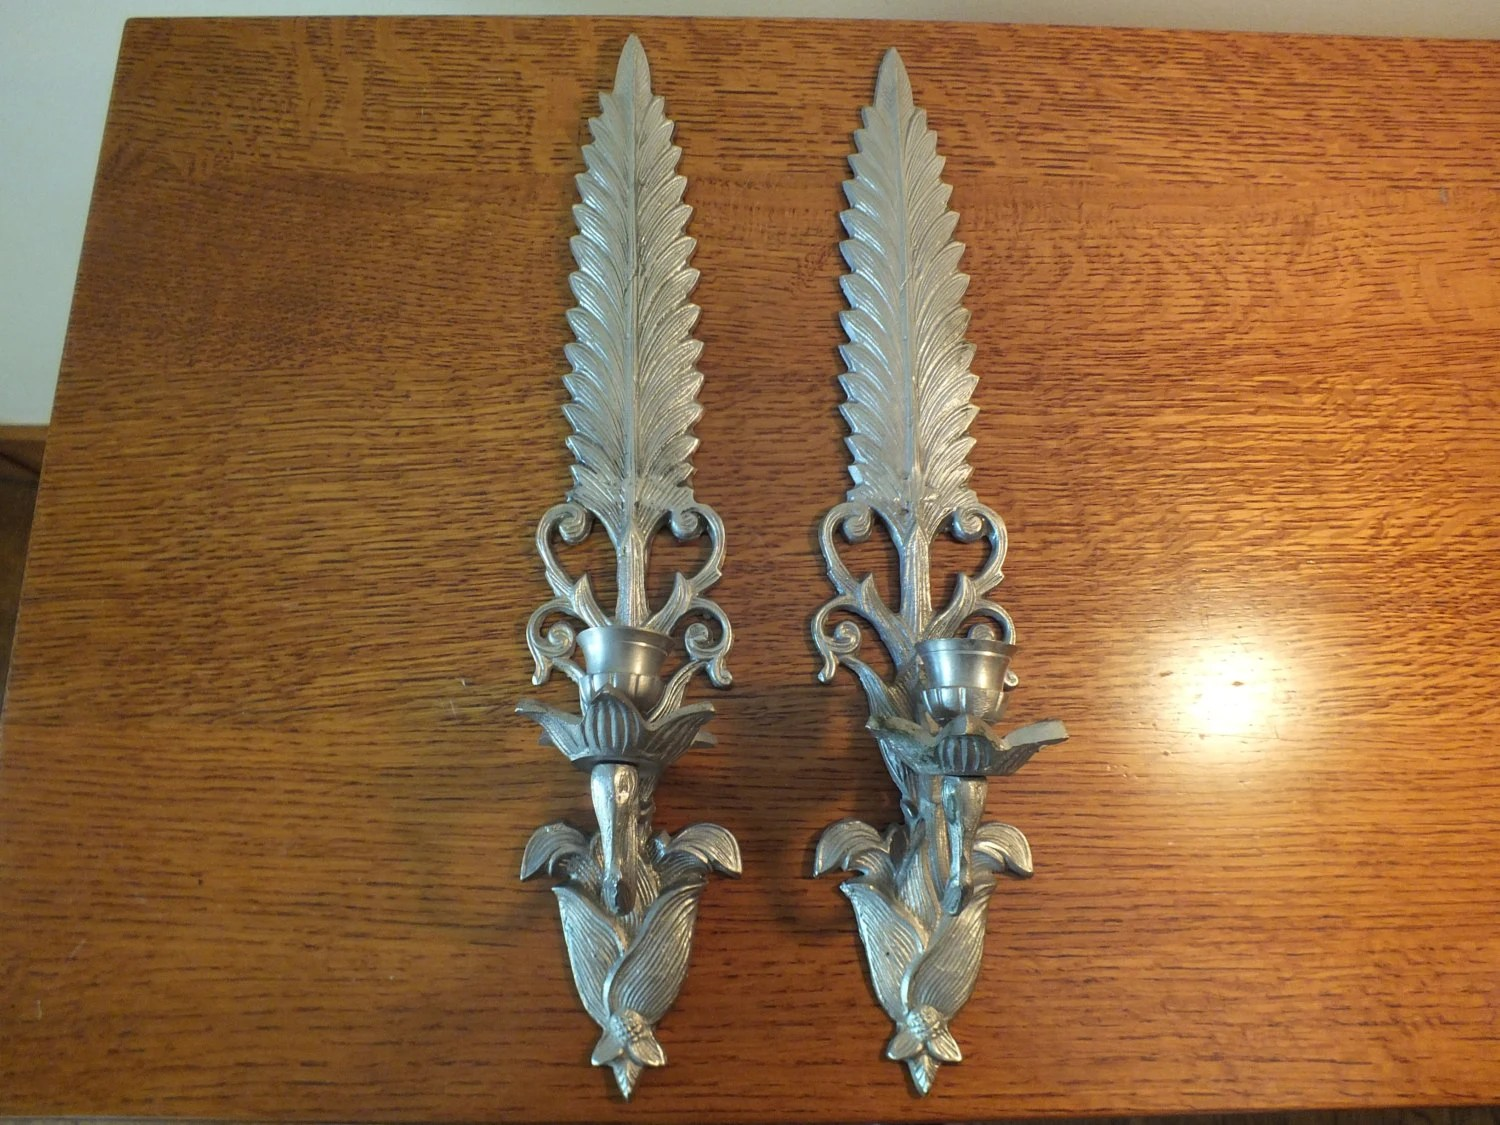 Pair of Vintage Candle Wall Sconces leaf design in silver on Silver Wall Sconces For Candles id=21814